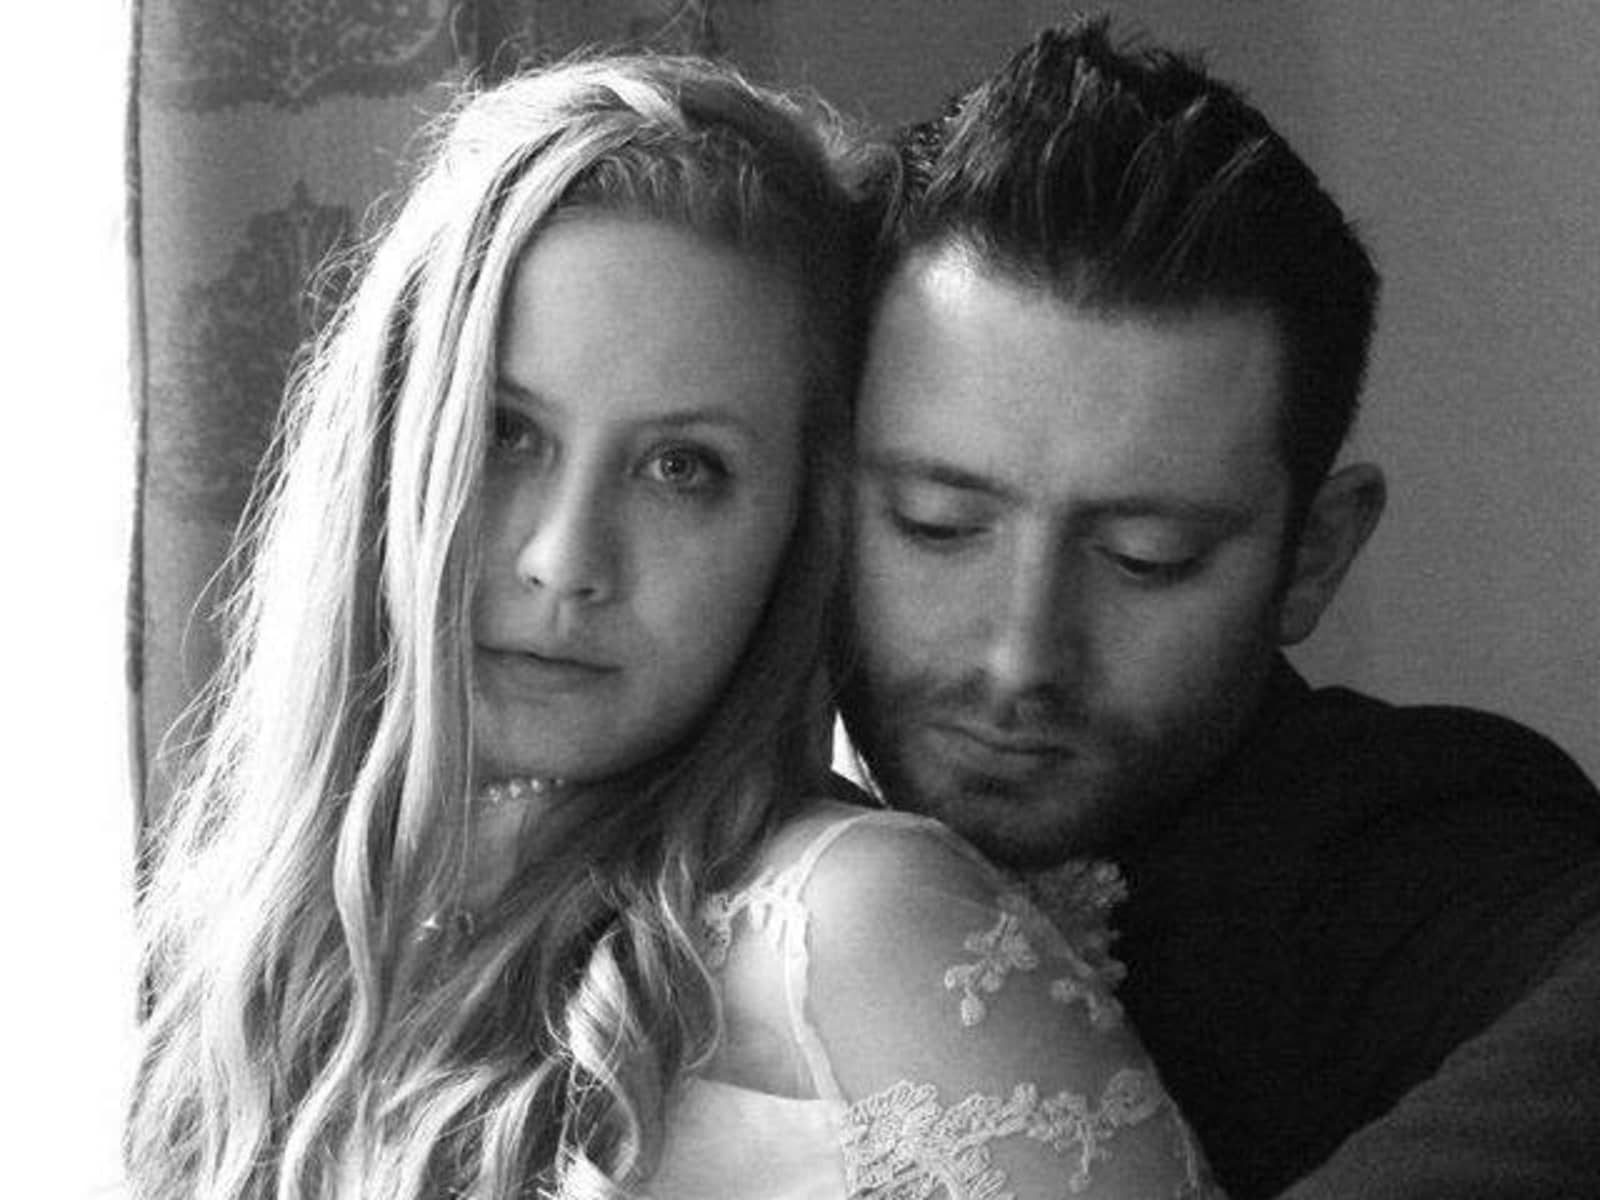 Grace & Silas from Fort Wayne, Indiana, United States